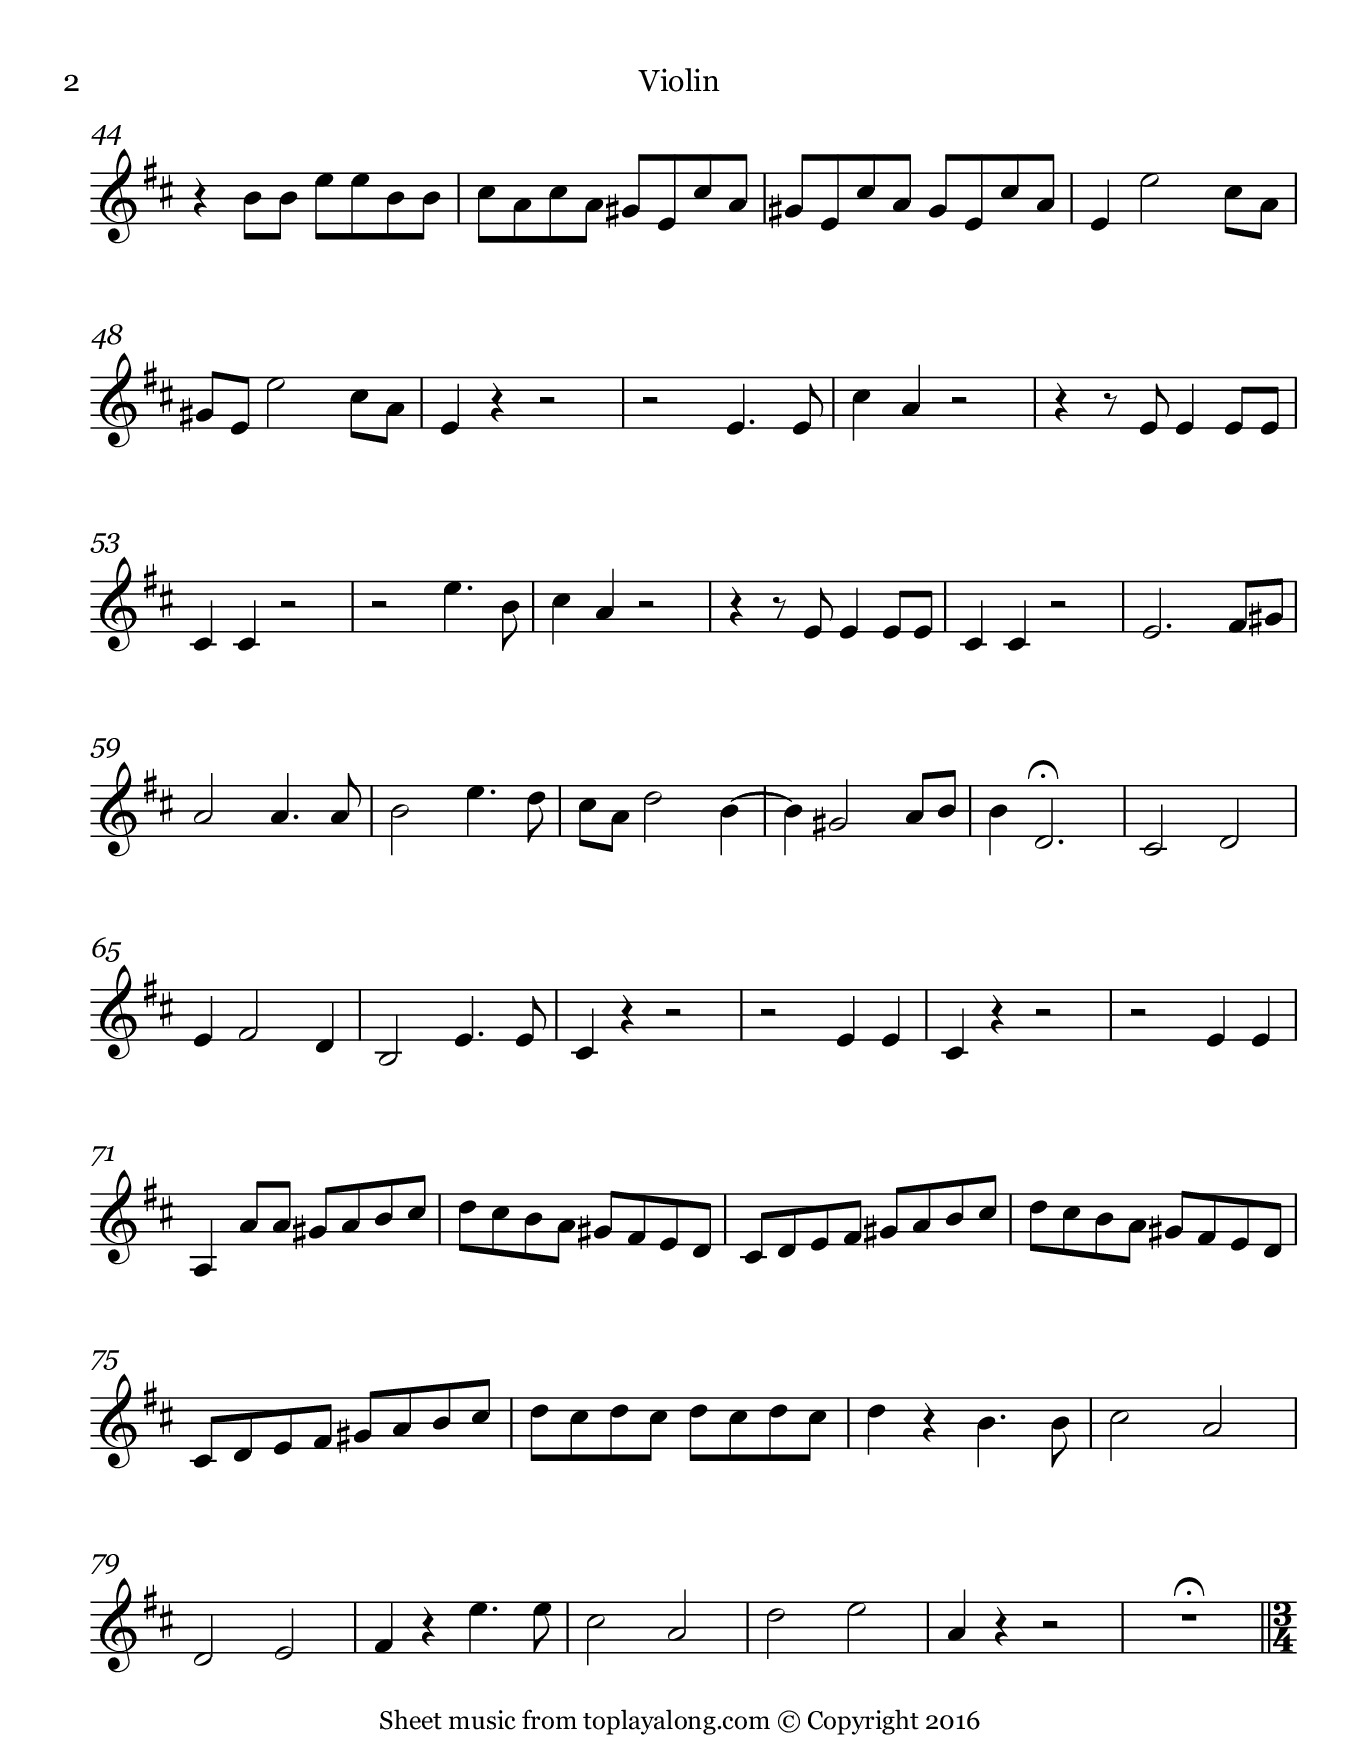 Madamina from Don Giovanni by Mozart. Sheet music for Violin, page 2.